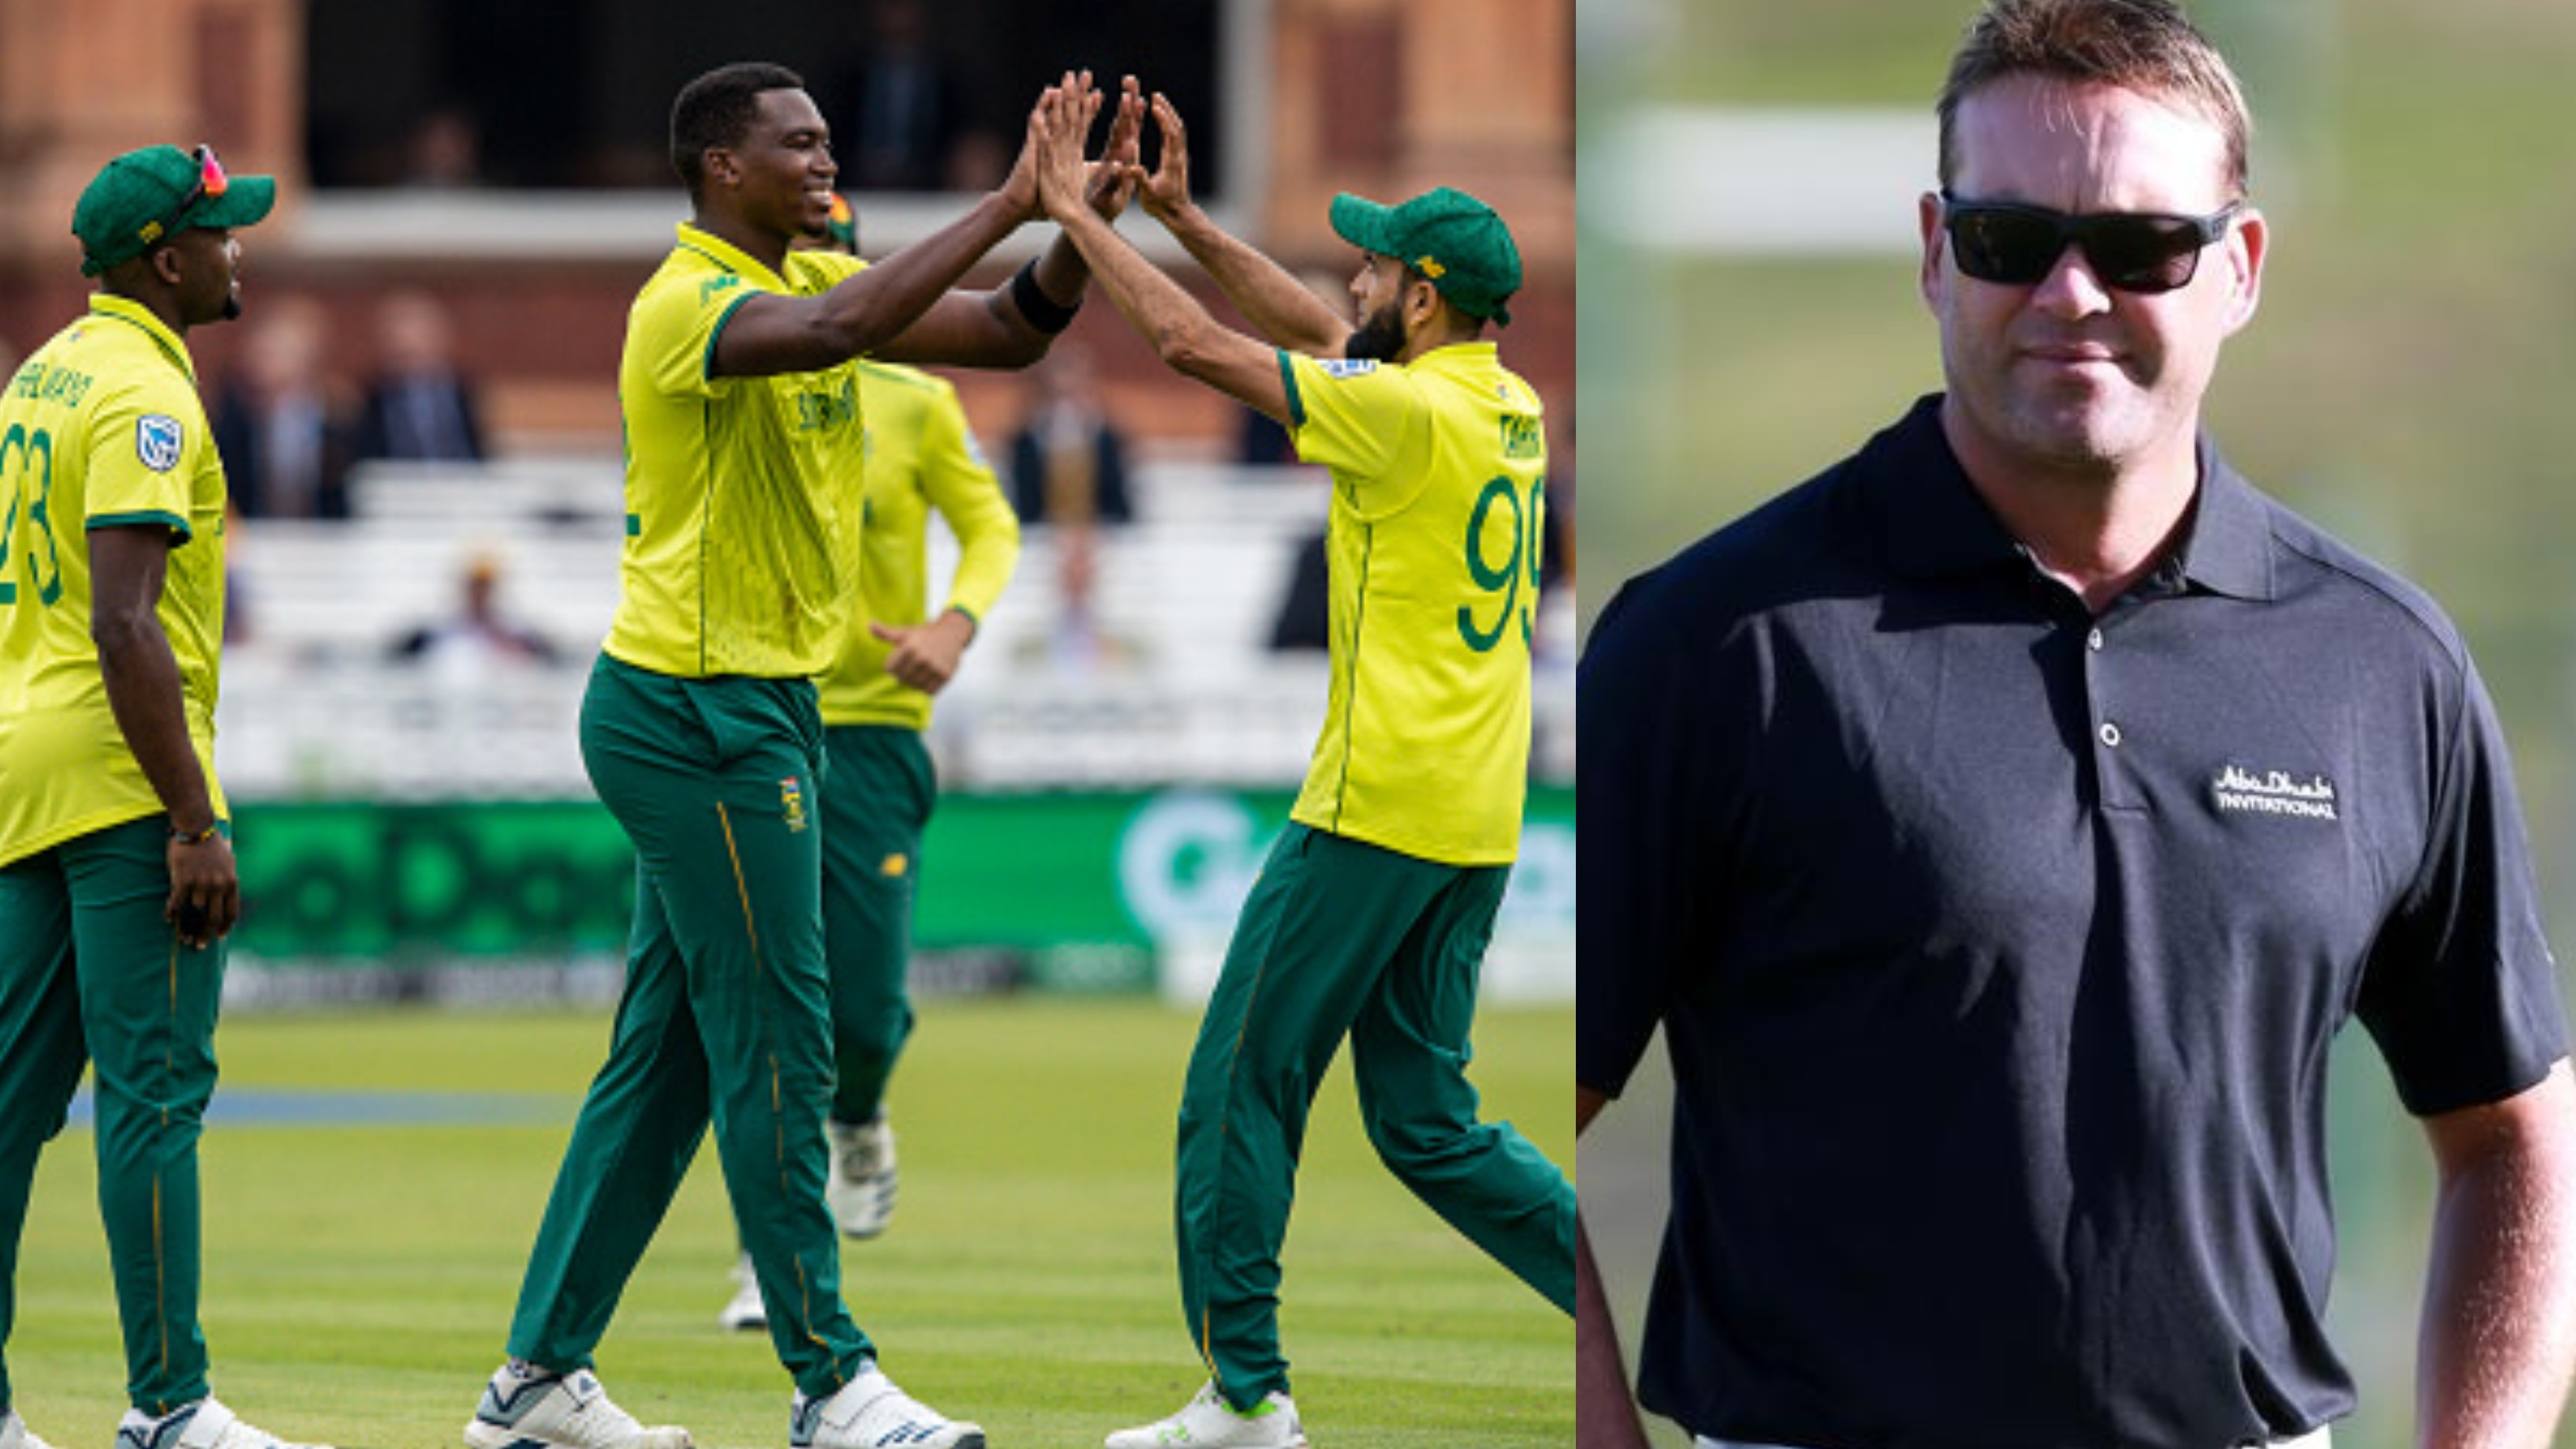 CWC 2019: Jacques Kallis urges South Africa to emulate England after their World Cup humiliation